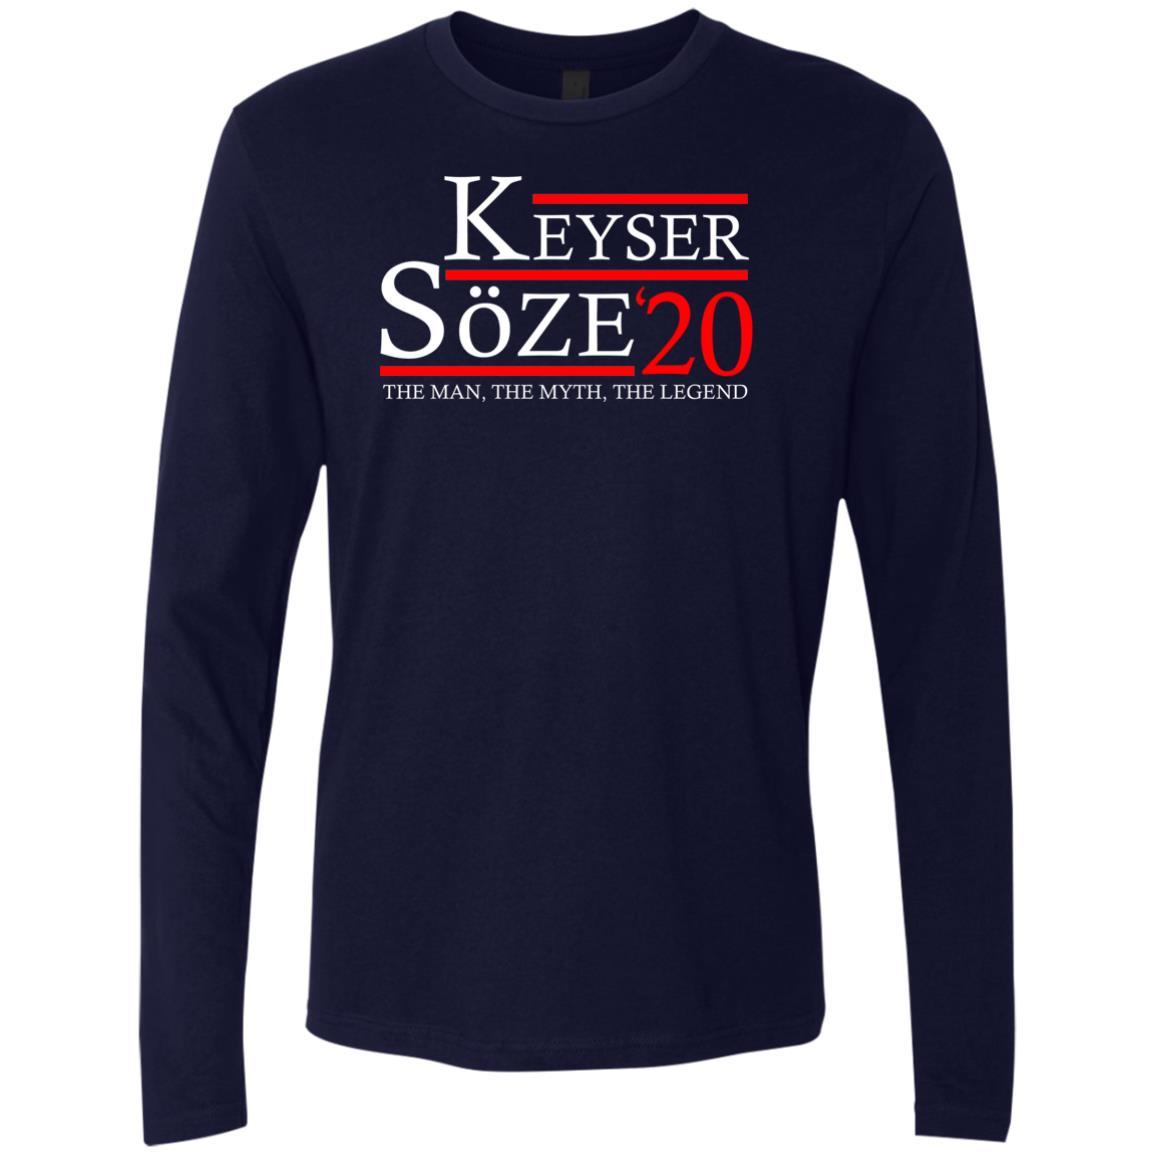 T-Shirts - Keyser Soze 20 Premium Long Sleeve